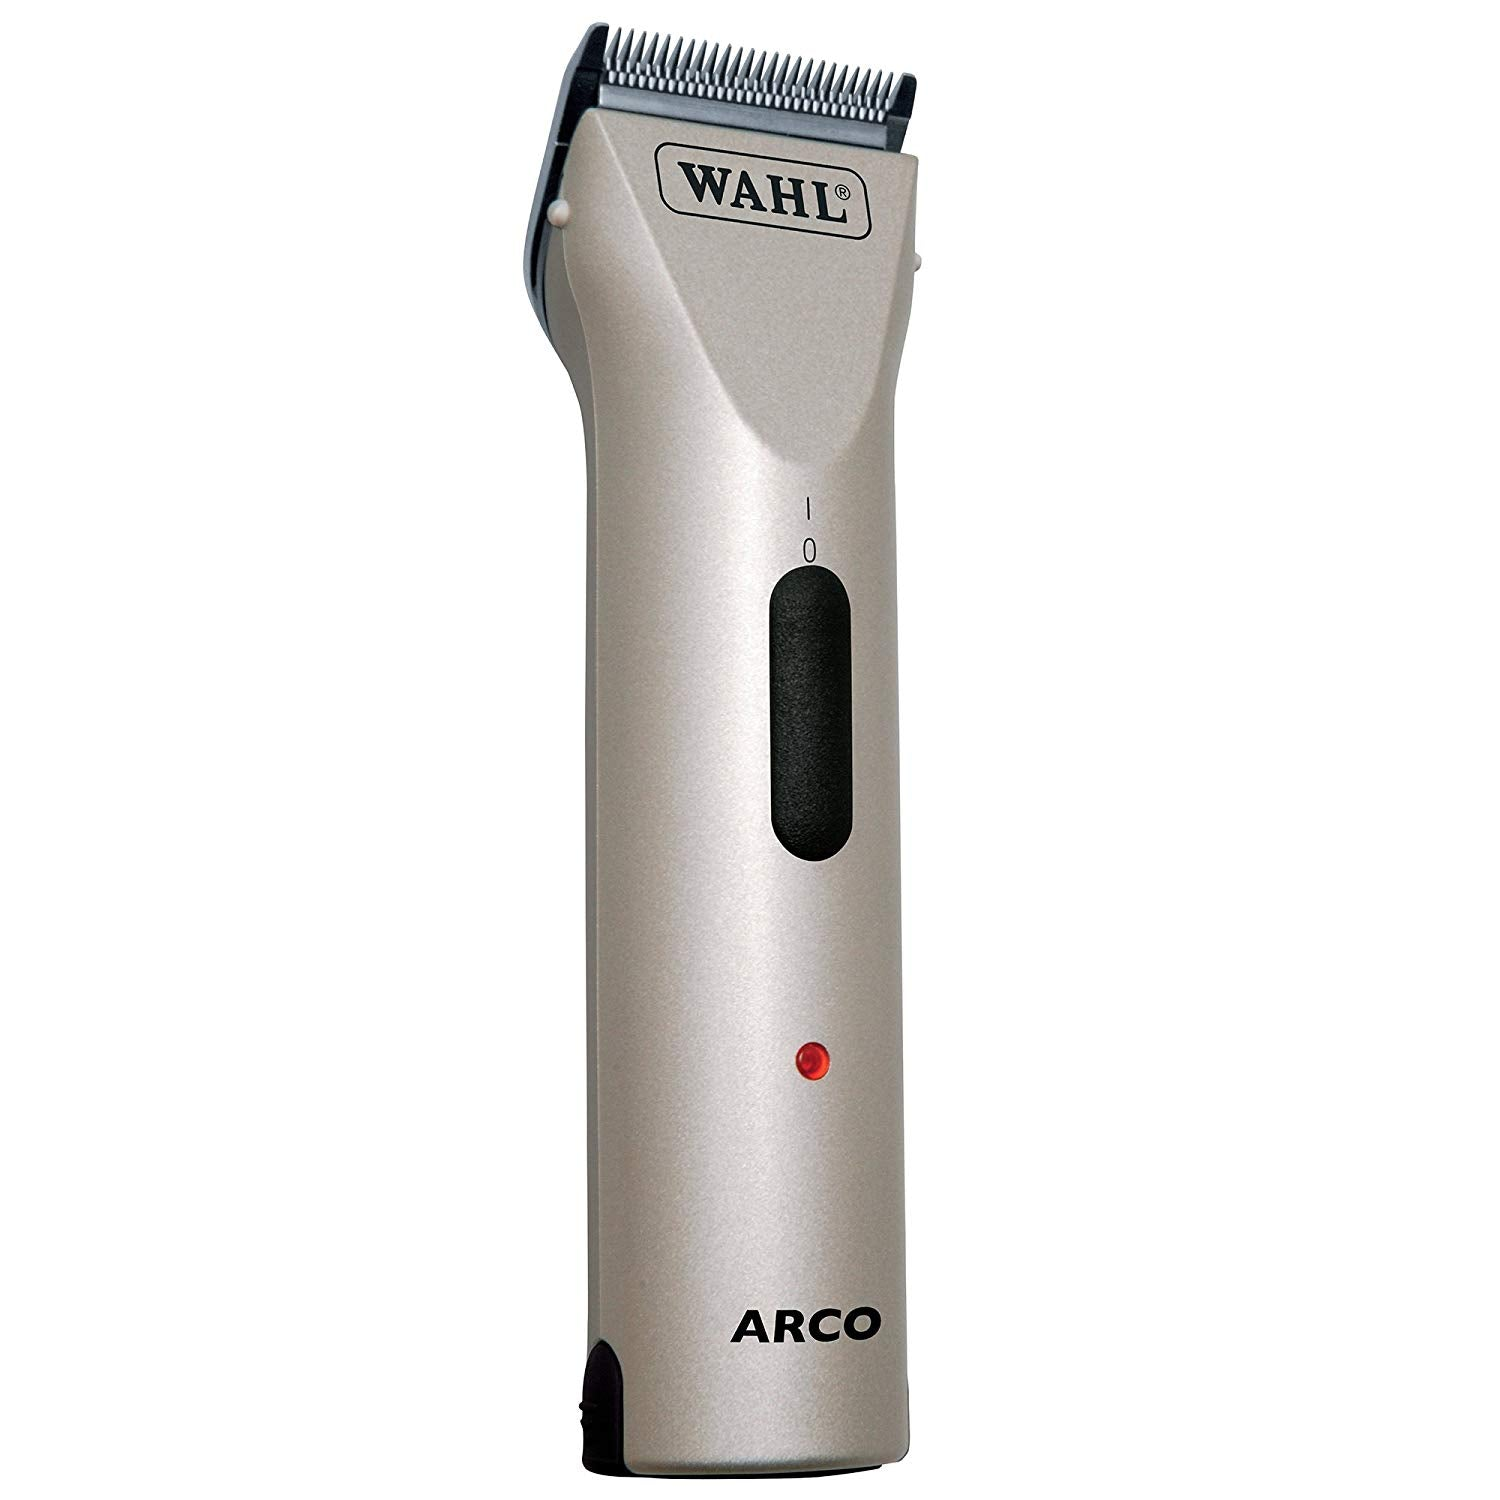 Wahl Arco 8786-800 Professional Animal Arco Equine 5-in-1 Cordless Horse Clipper